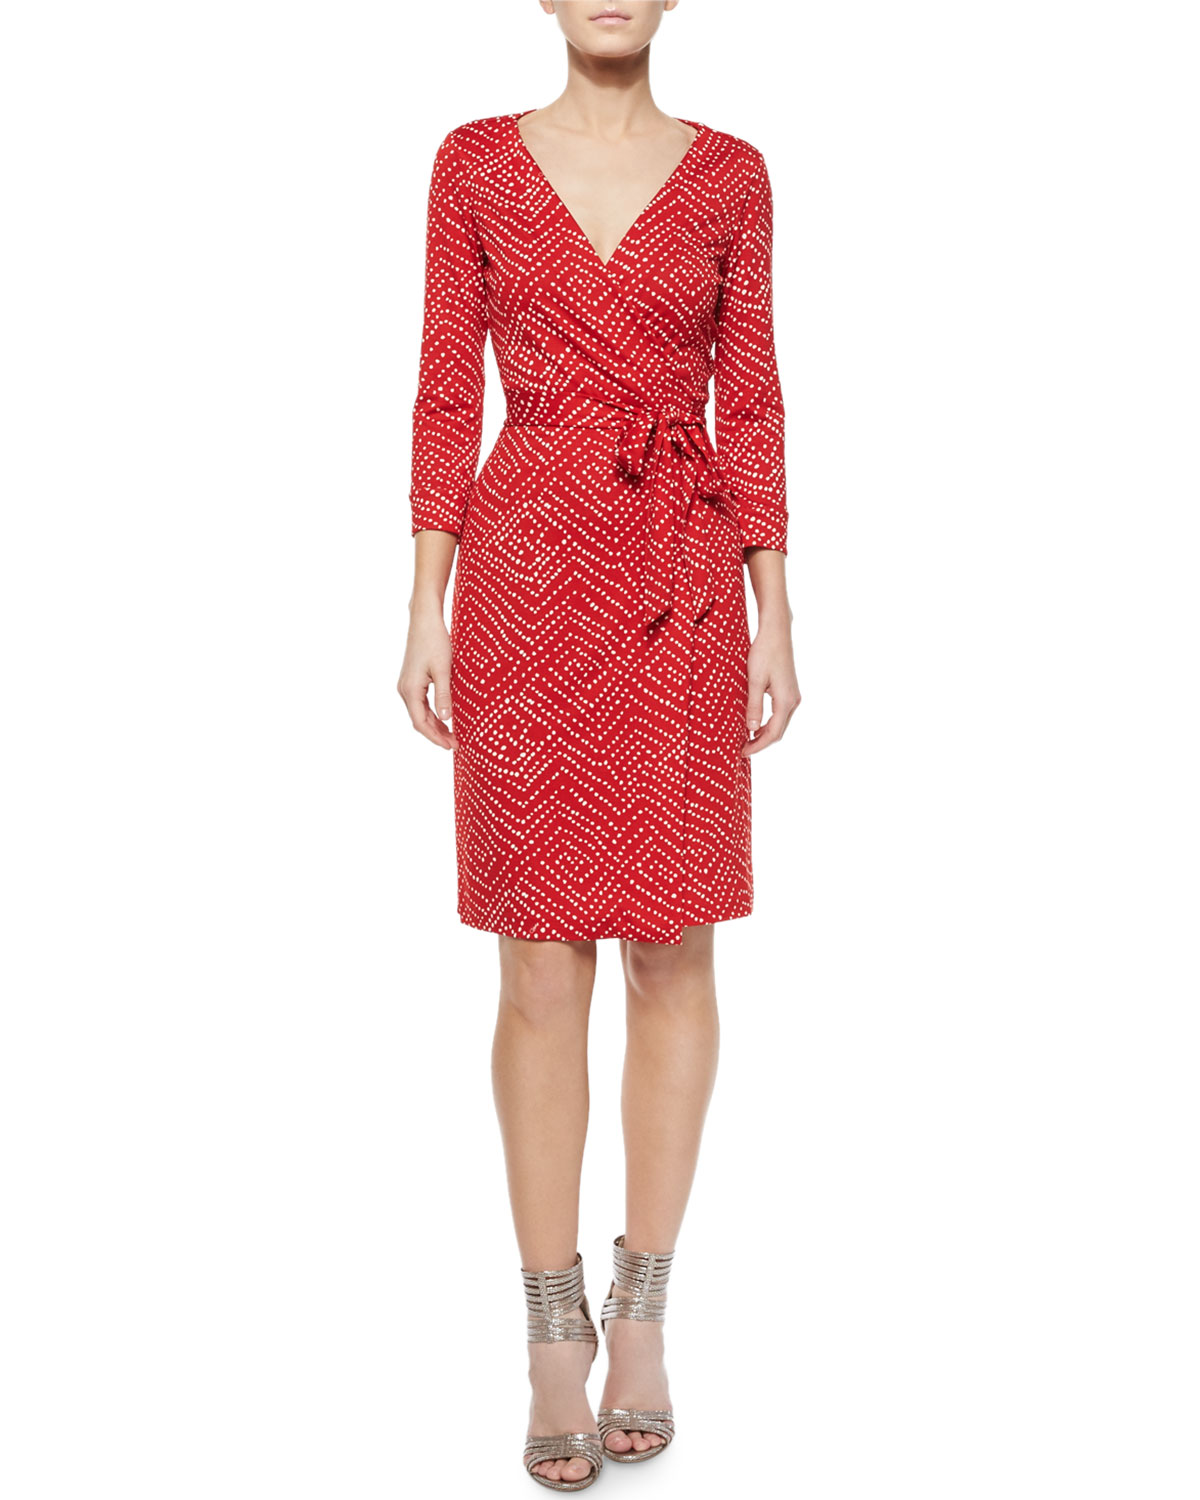 Ditzy Silk Polka-Dot Wrap Dress, Batik Red